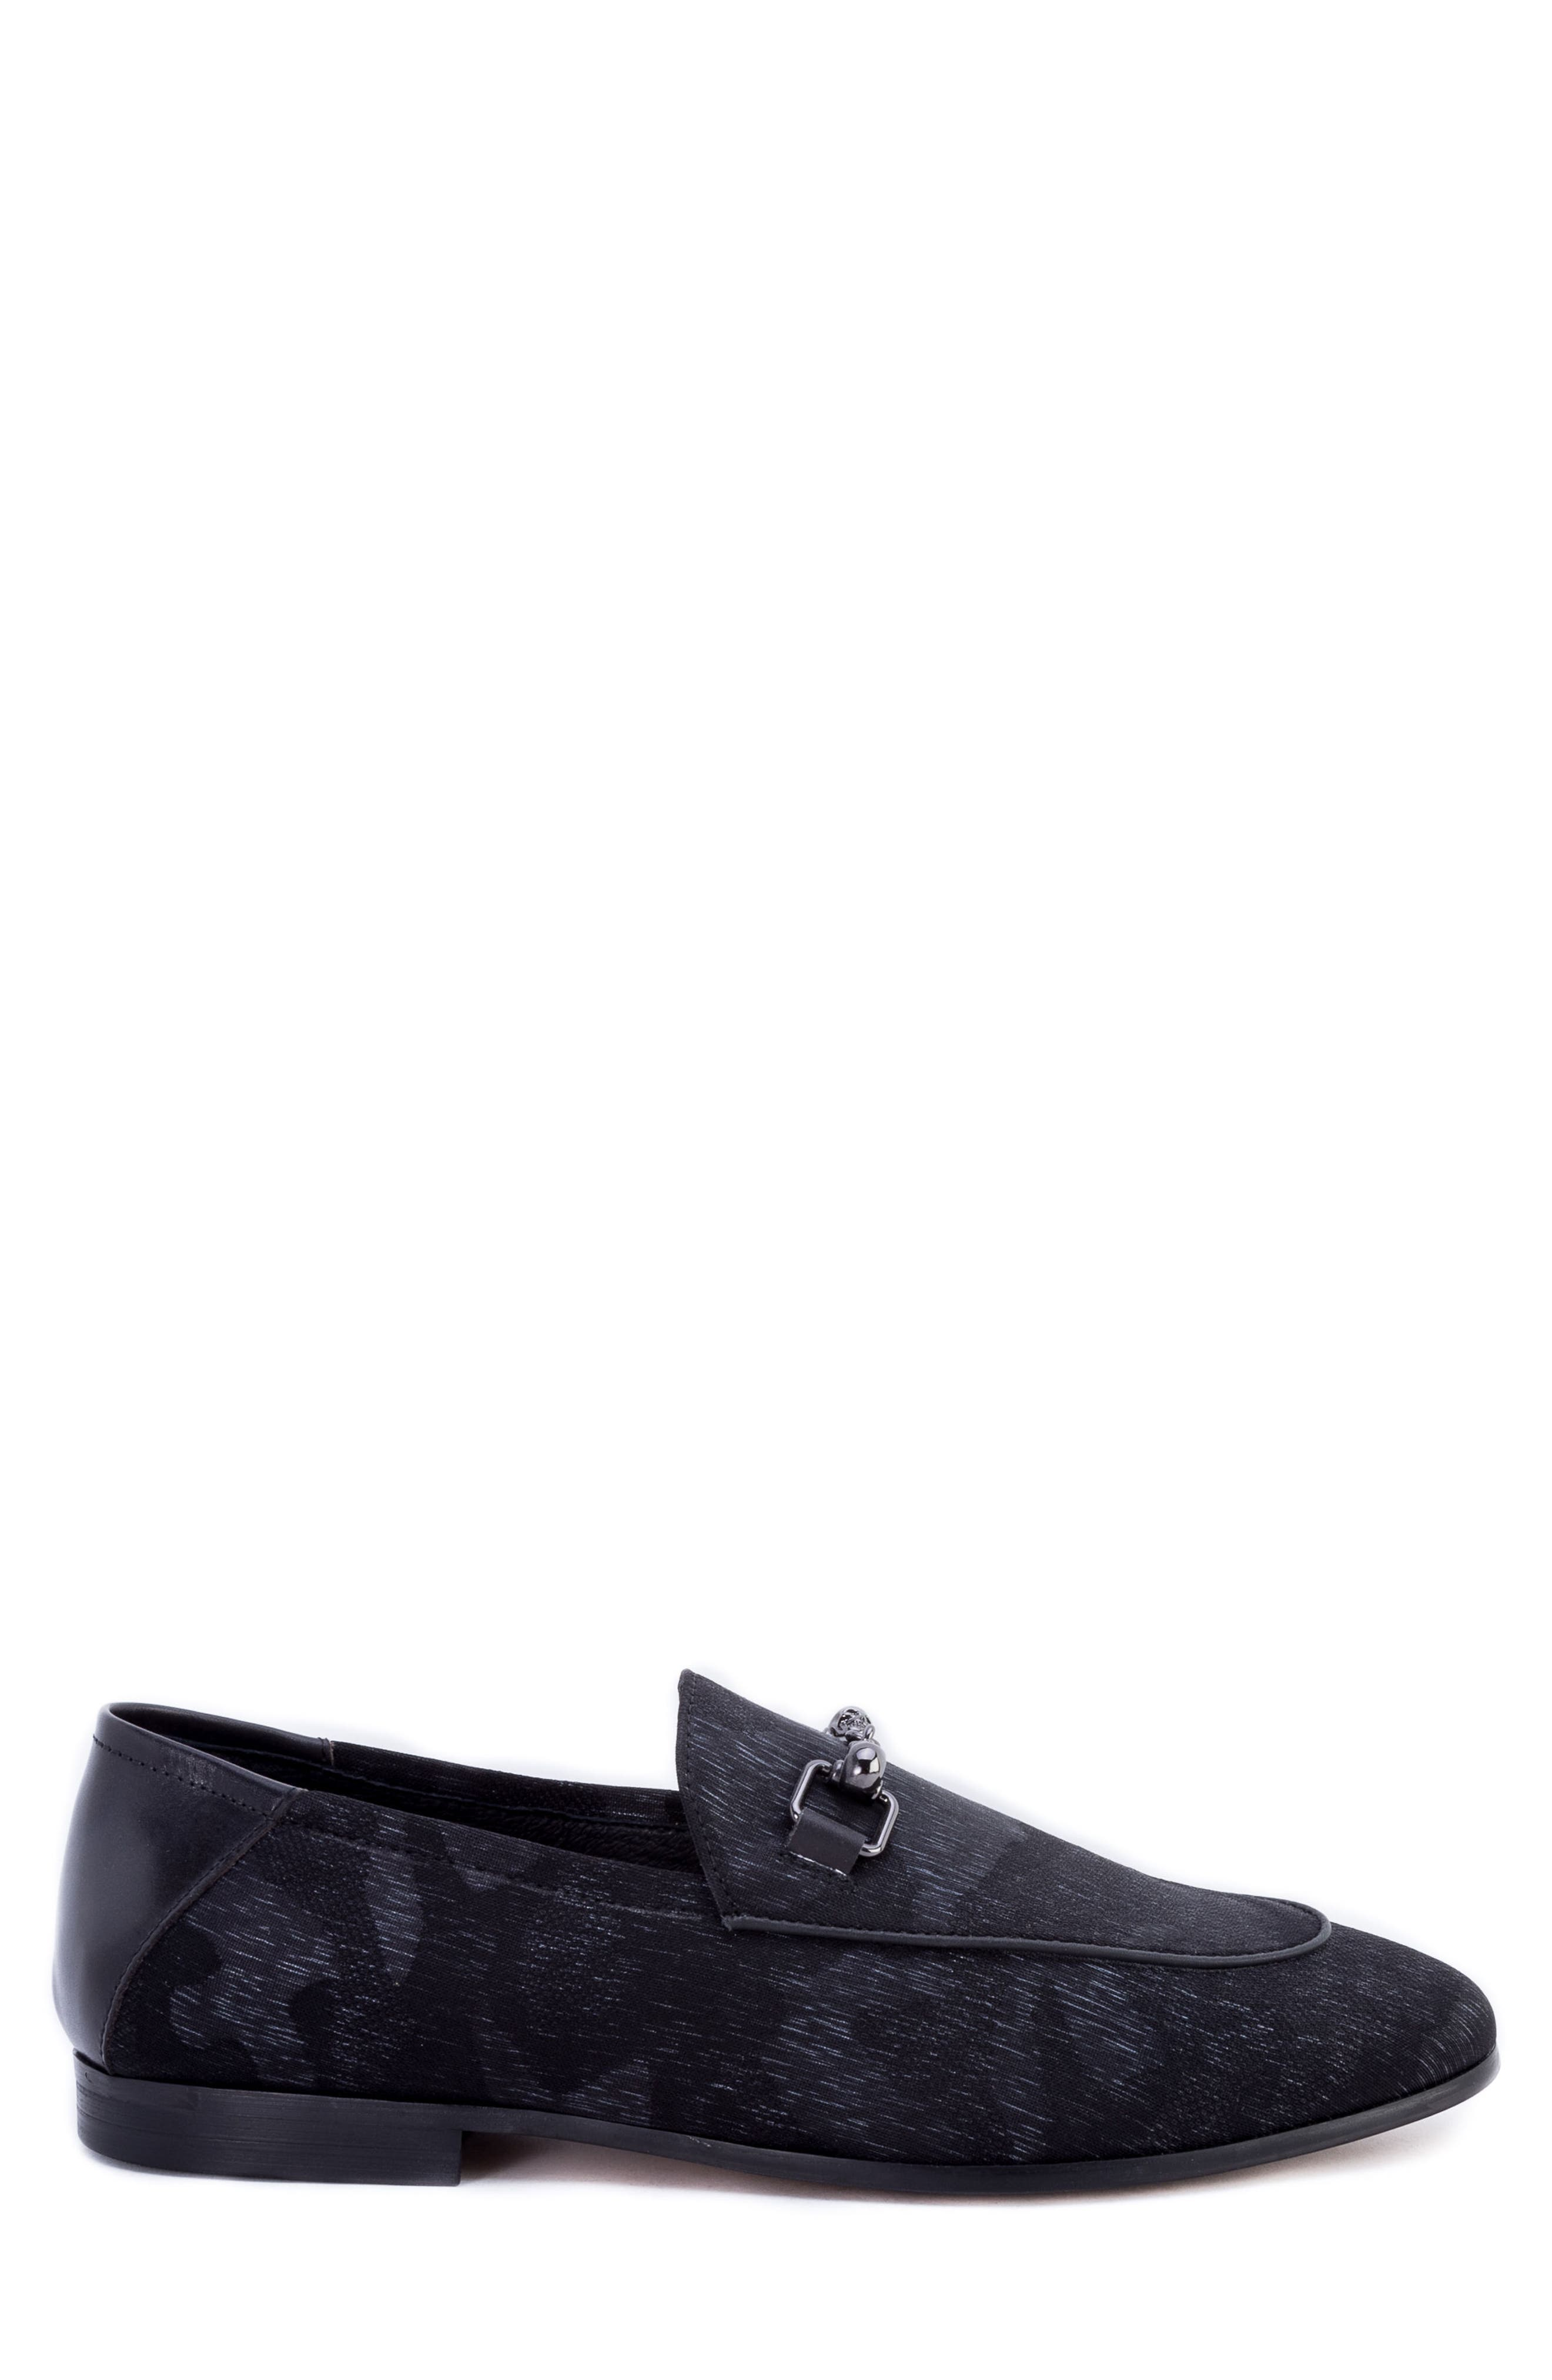 Barton Camouflage Bit Loafer,                             Alternate thumbnail 3, color,                             GREY FABRIC